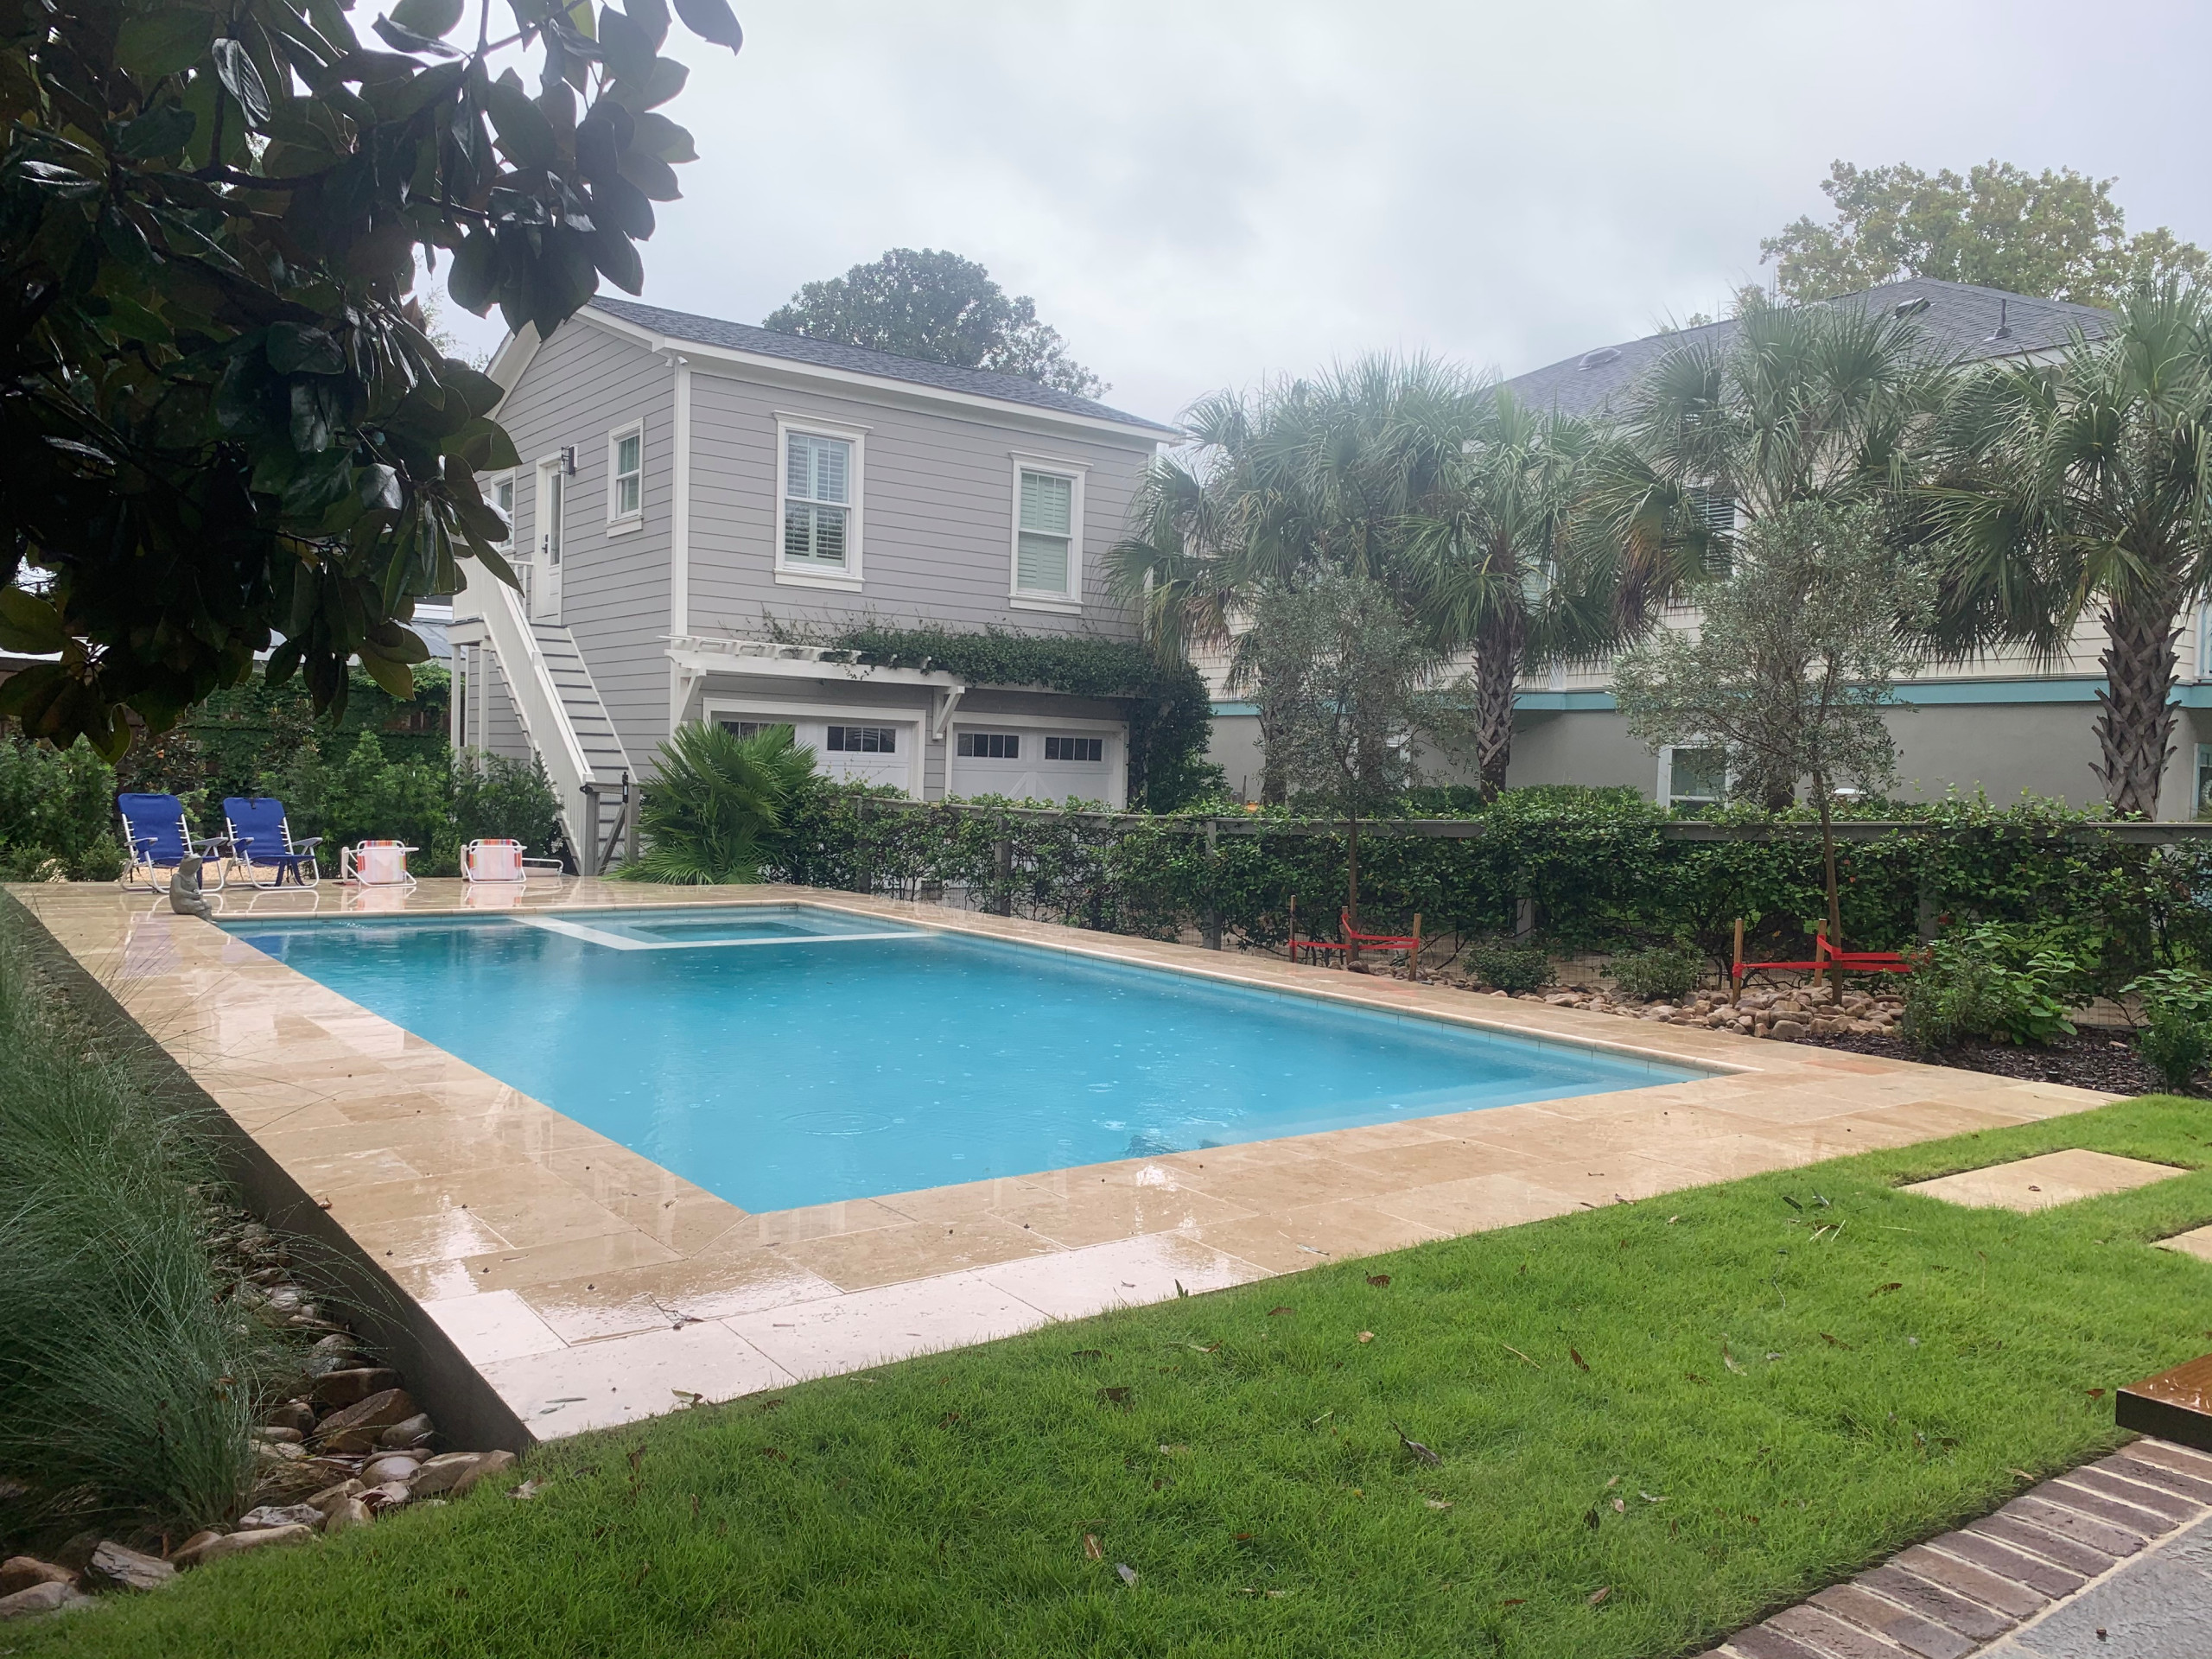 Mount Pleasant, Old Village - Modern Classic with a Pool